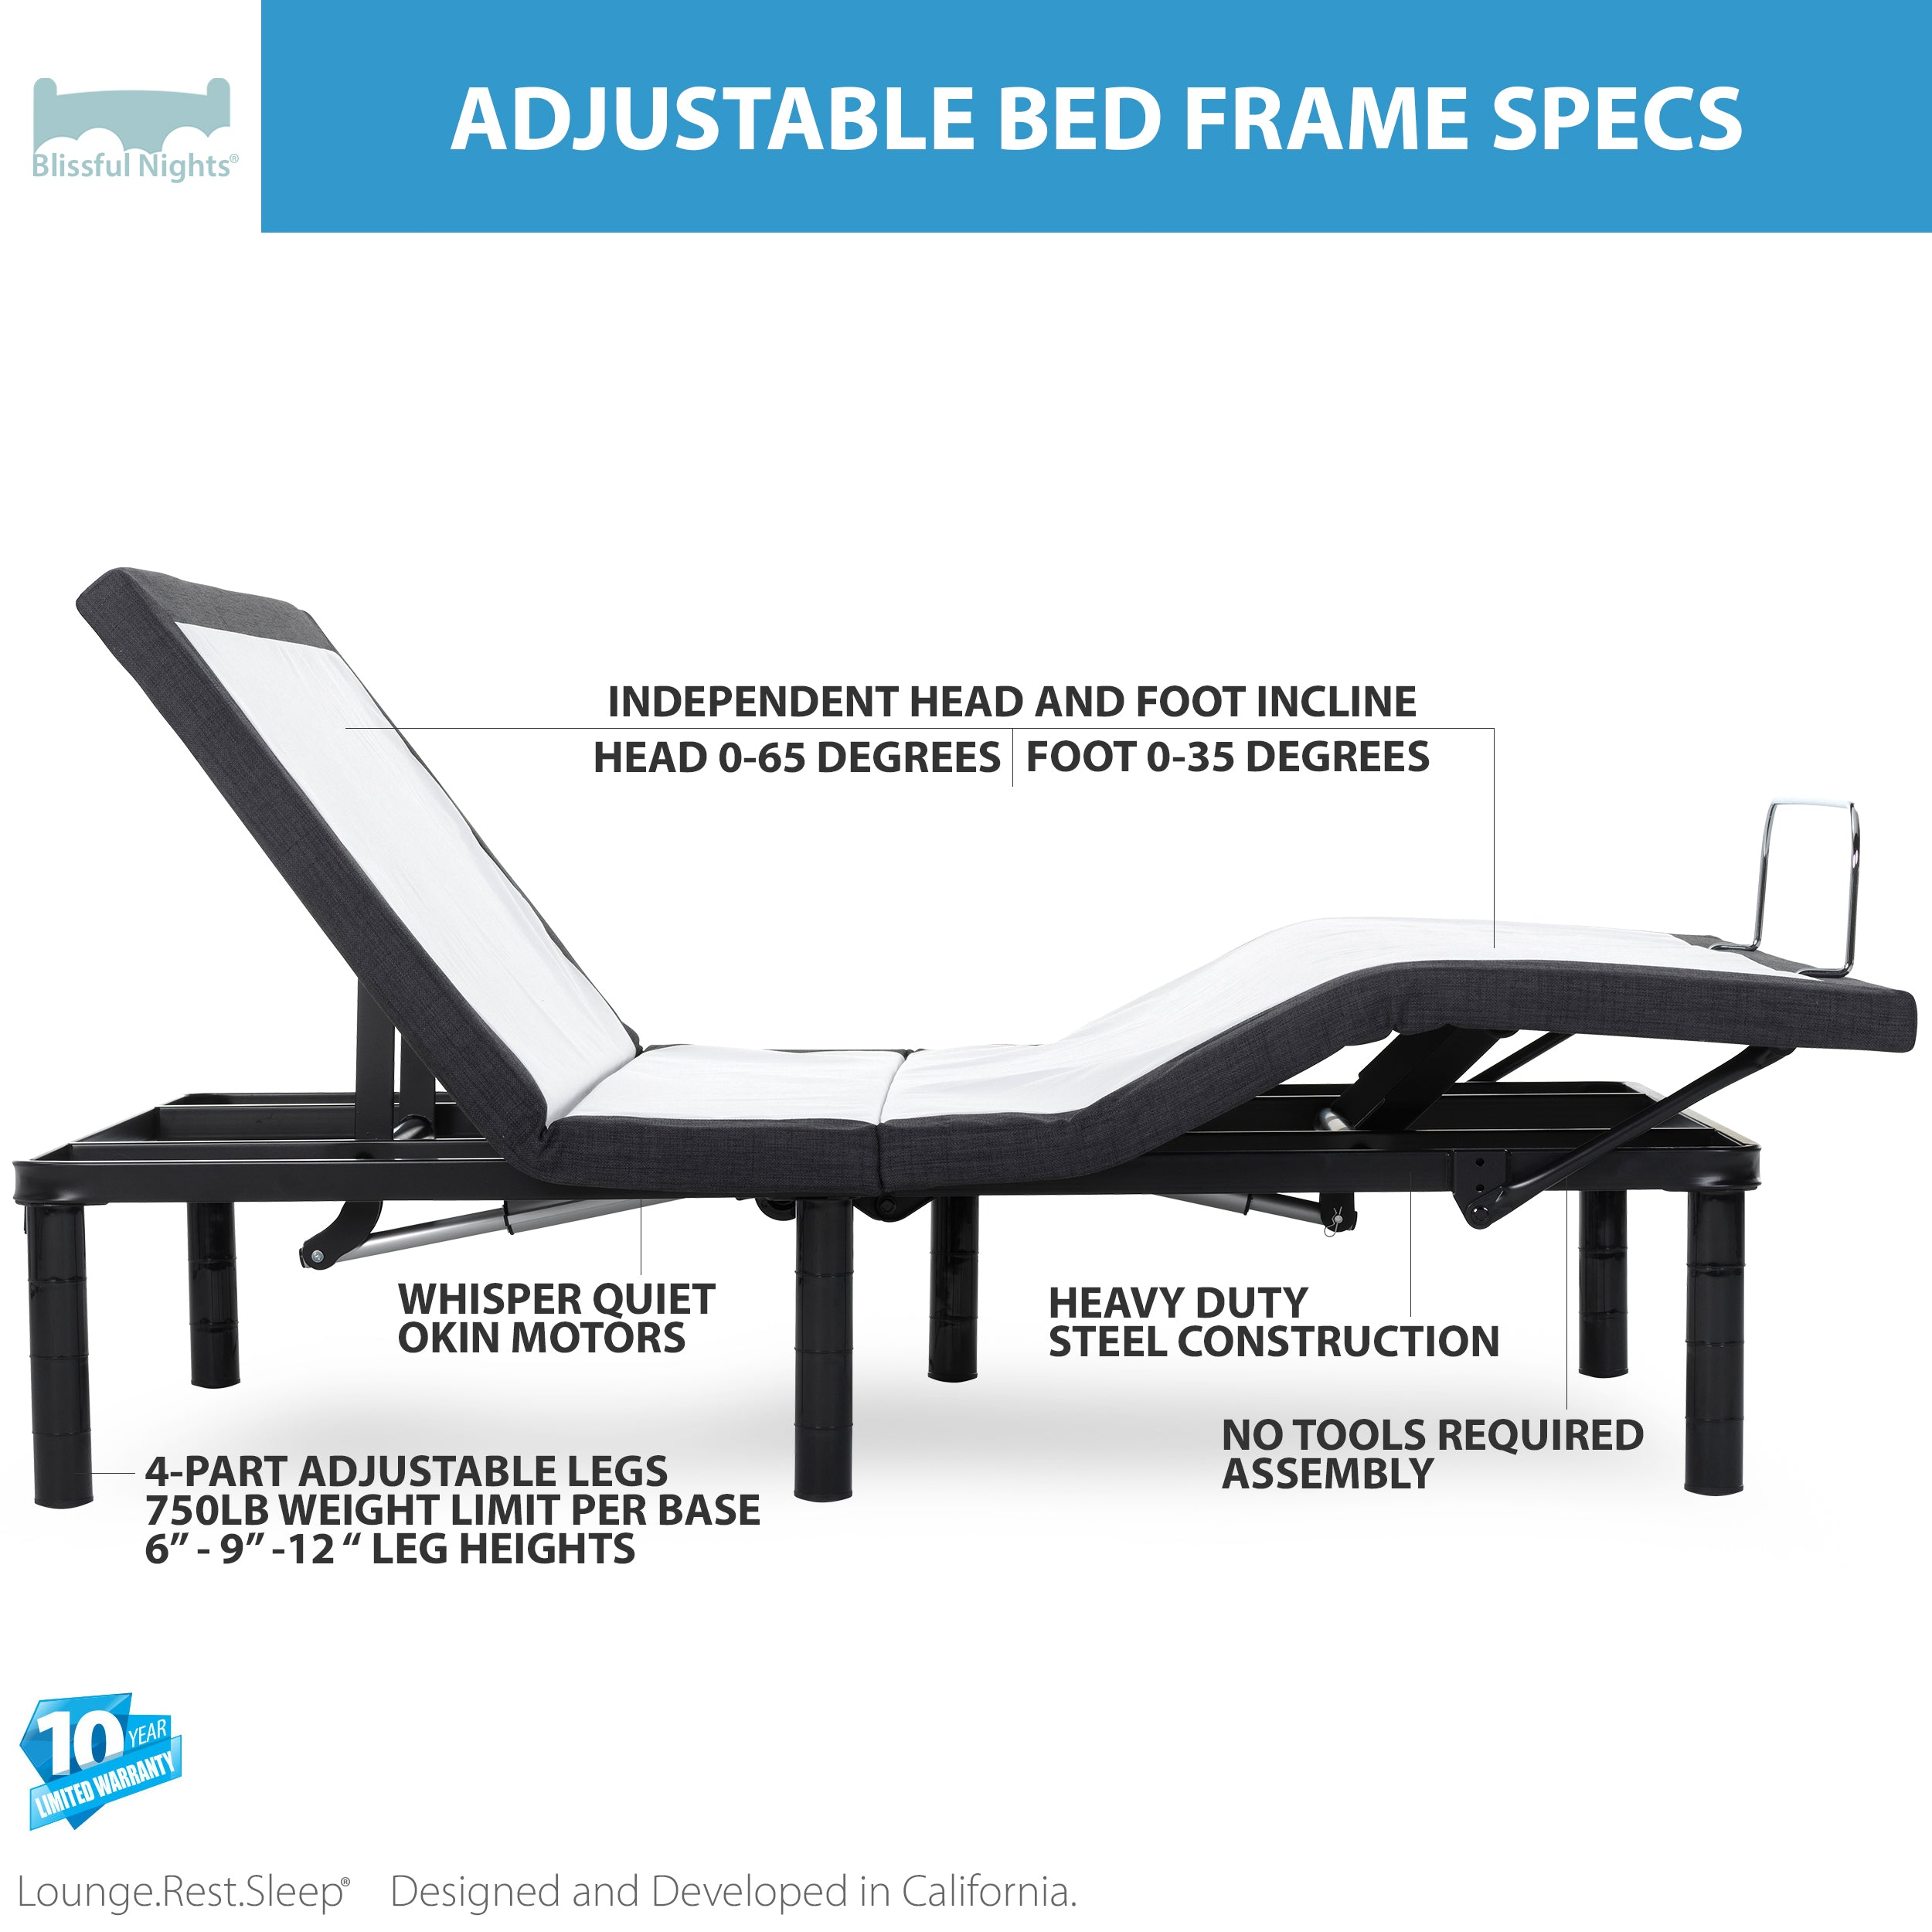 Build Your Own King Adjustable Sleep System With Power Base And Mattress Blissfulnights Com